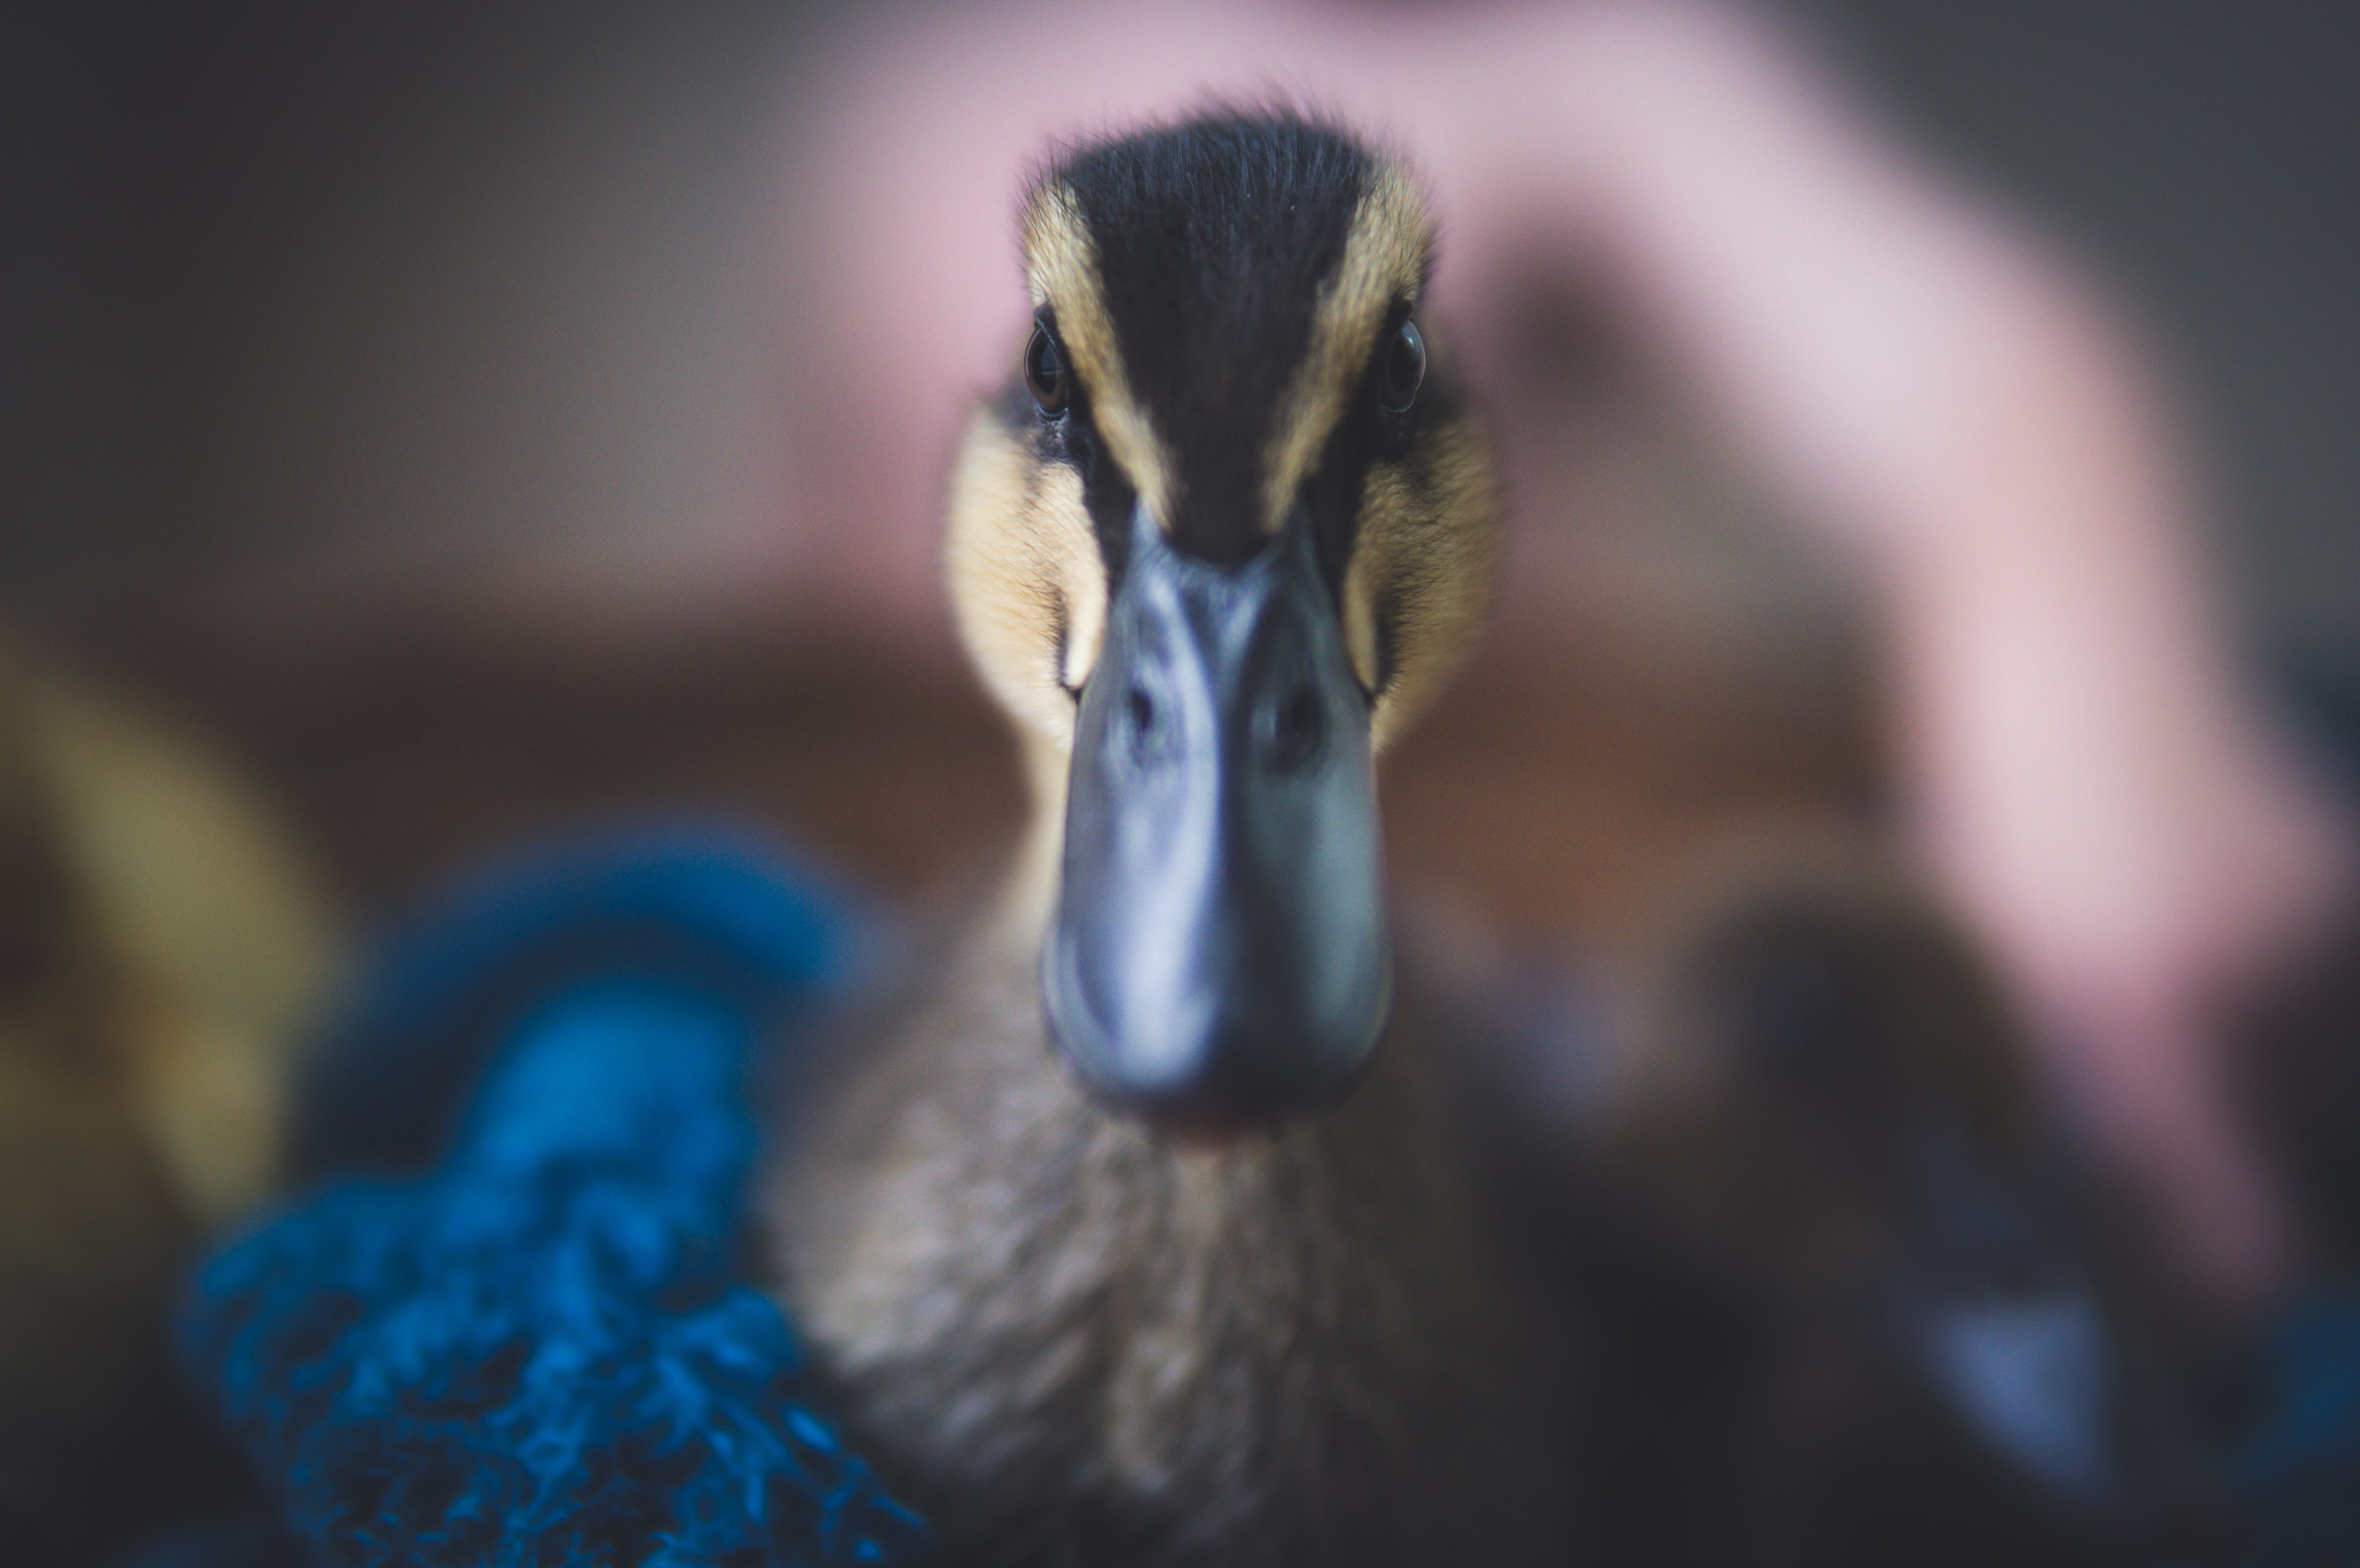 Close-Up Photography of Black Duck